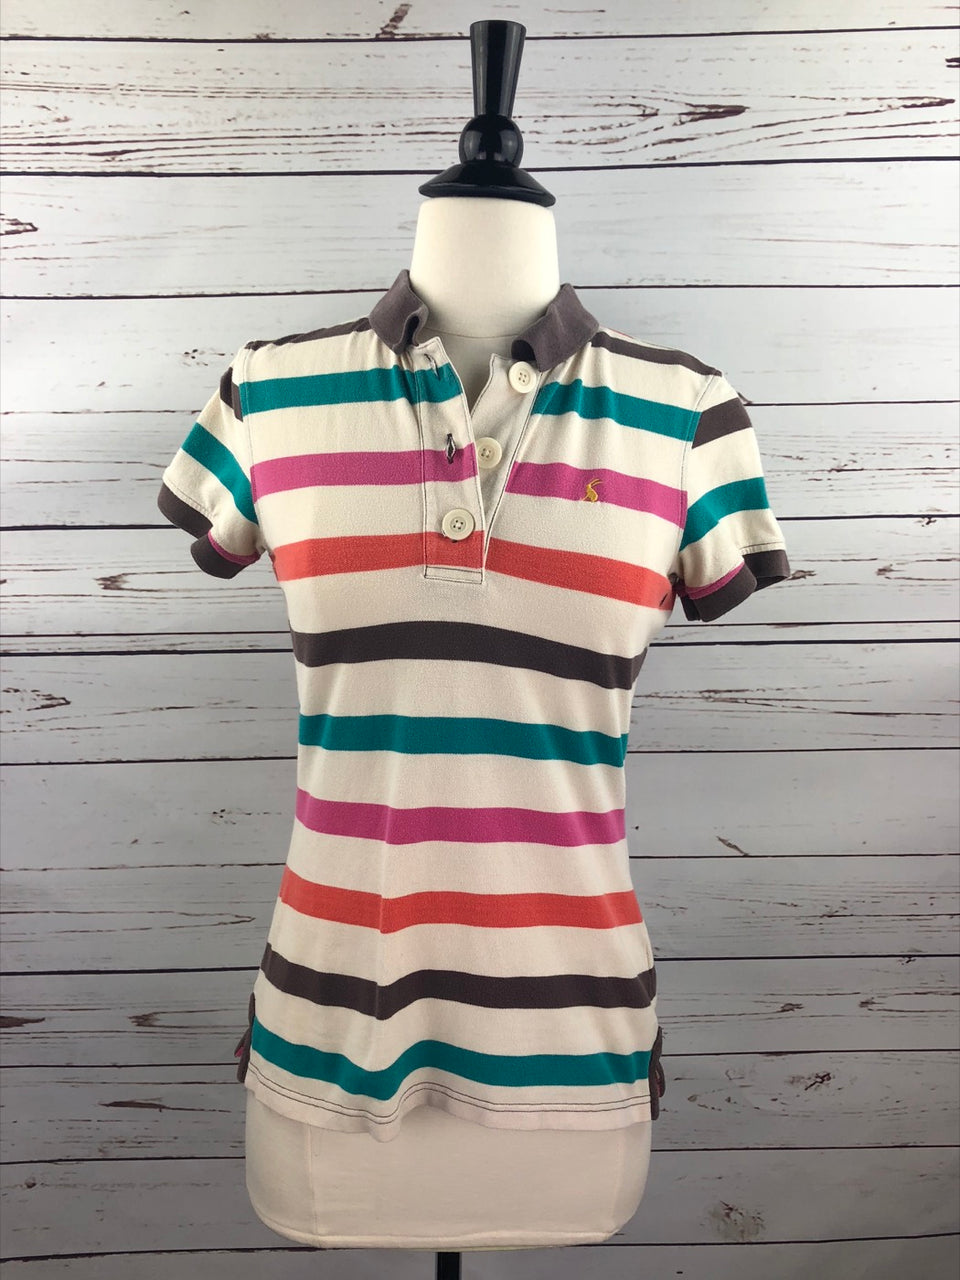 Joules Stripe Polo in Multi Stripe - Women's Small